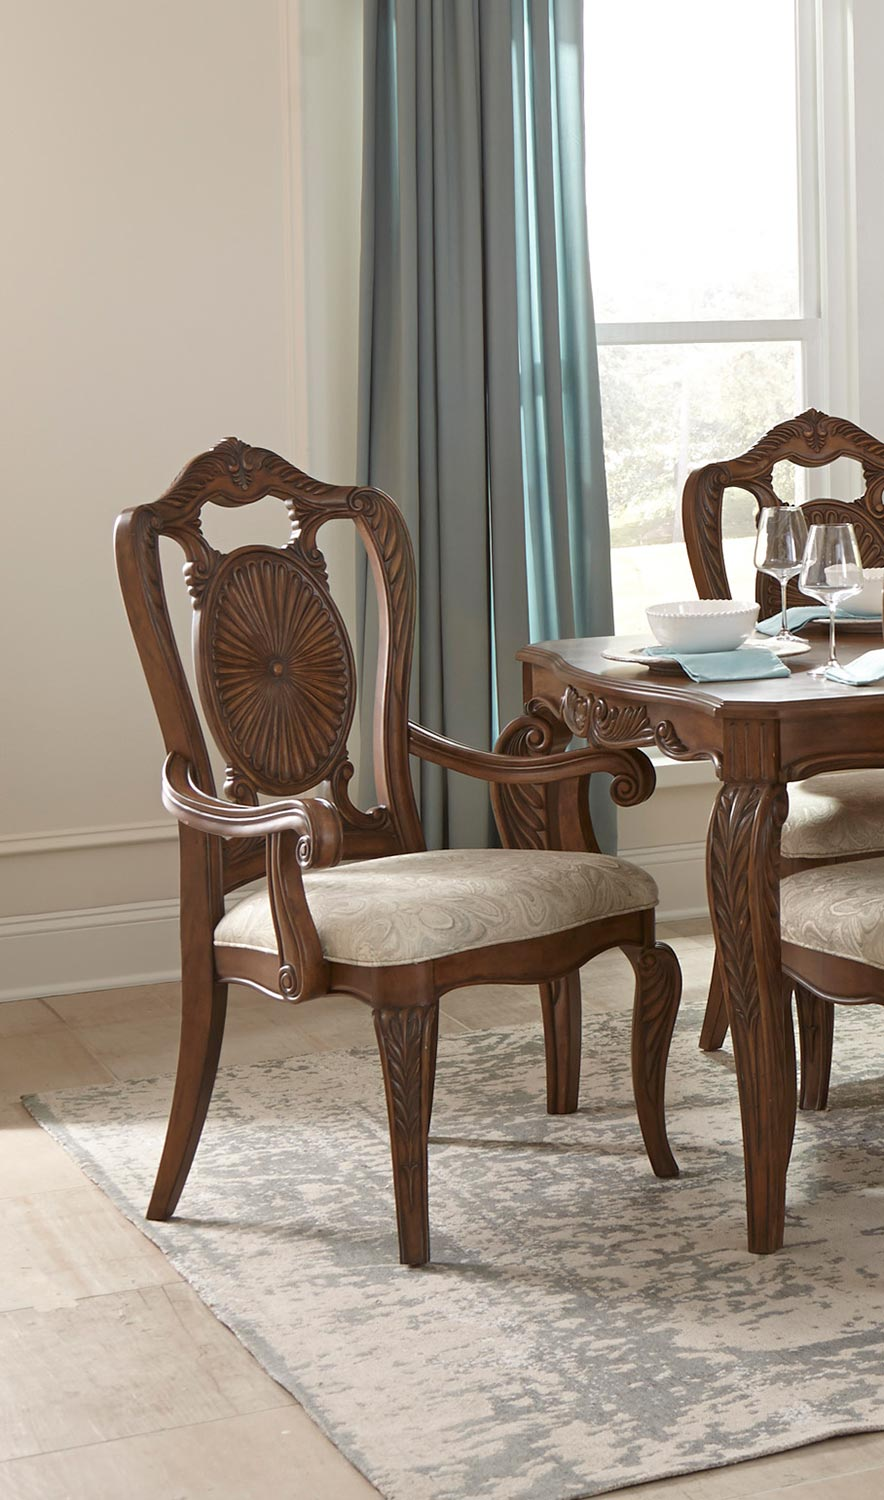 Homelegance Moorewood Park Arm Chair - Pecan